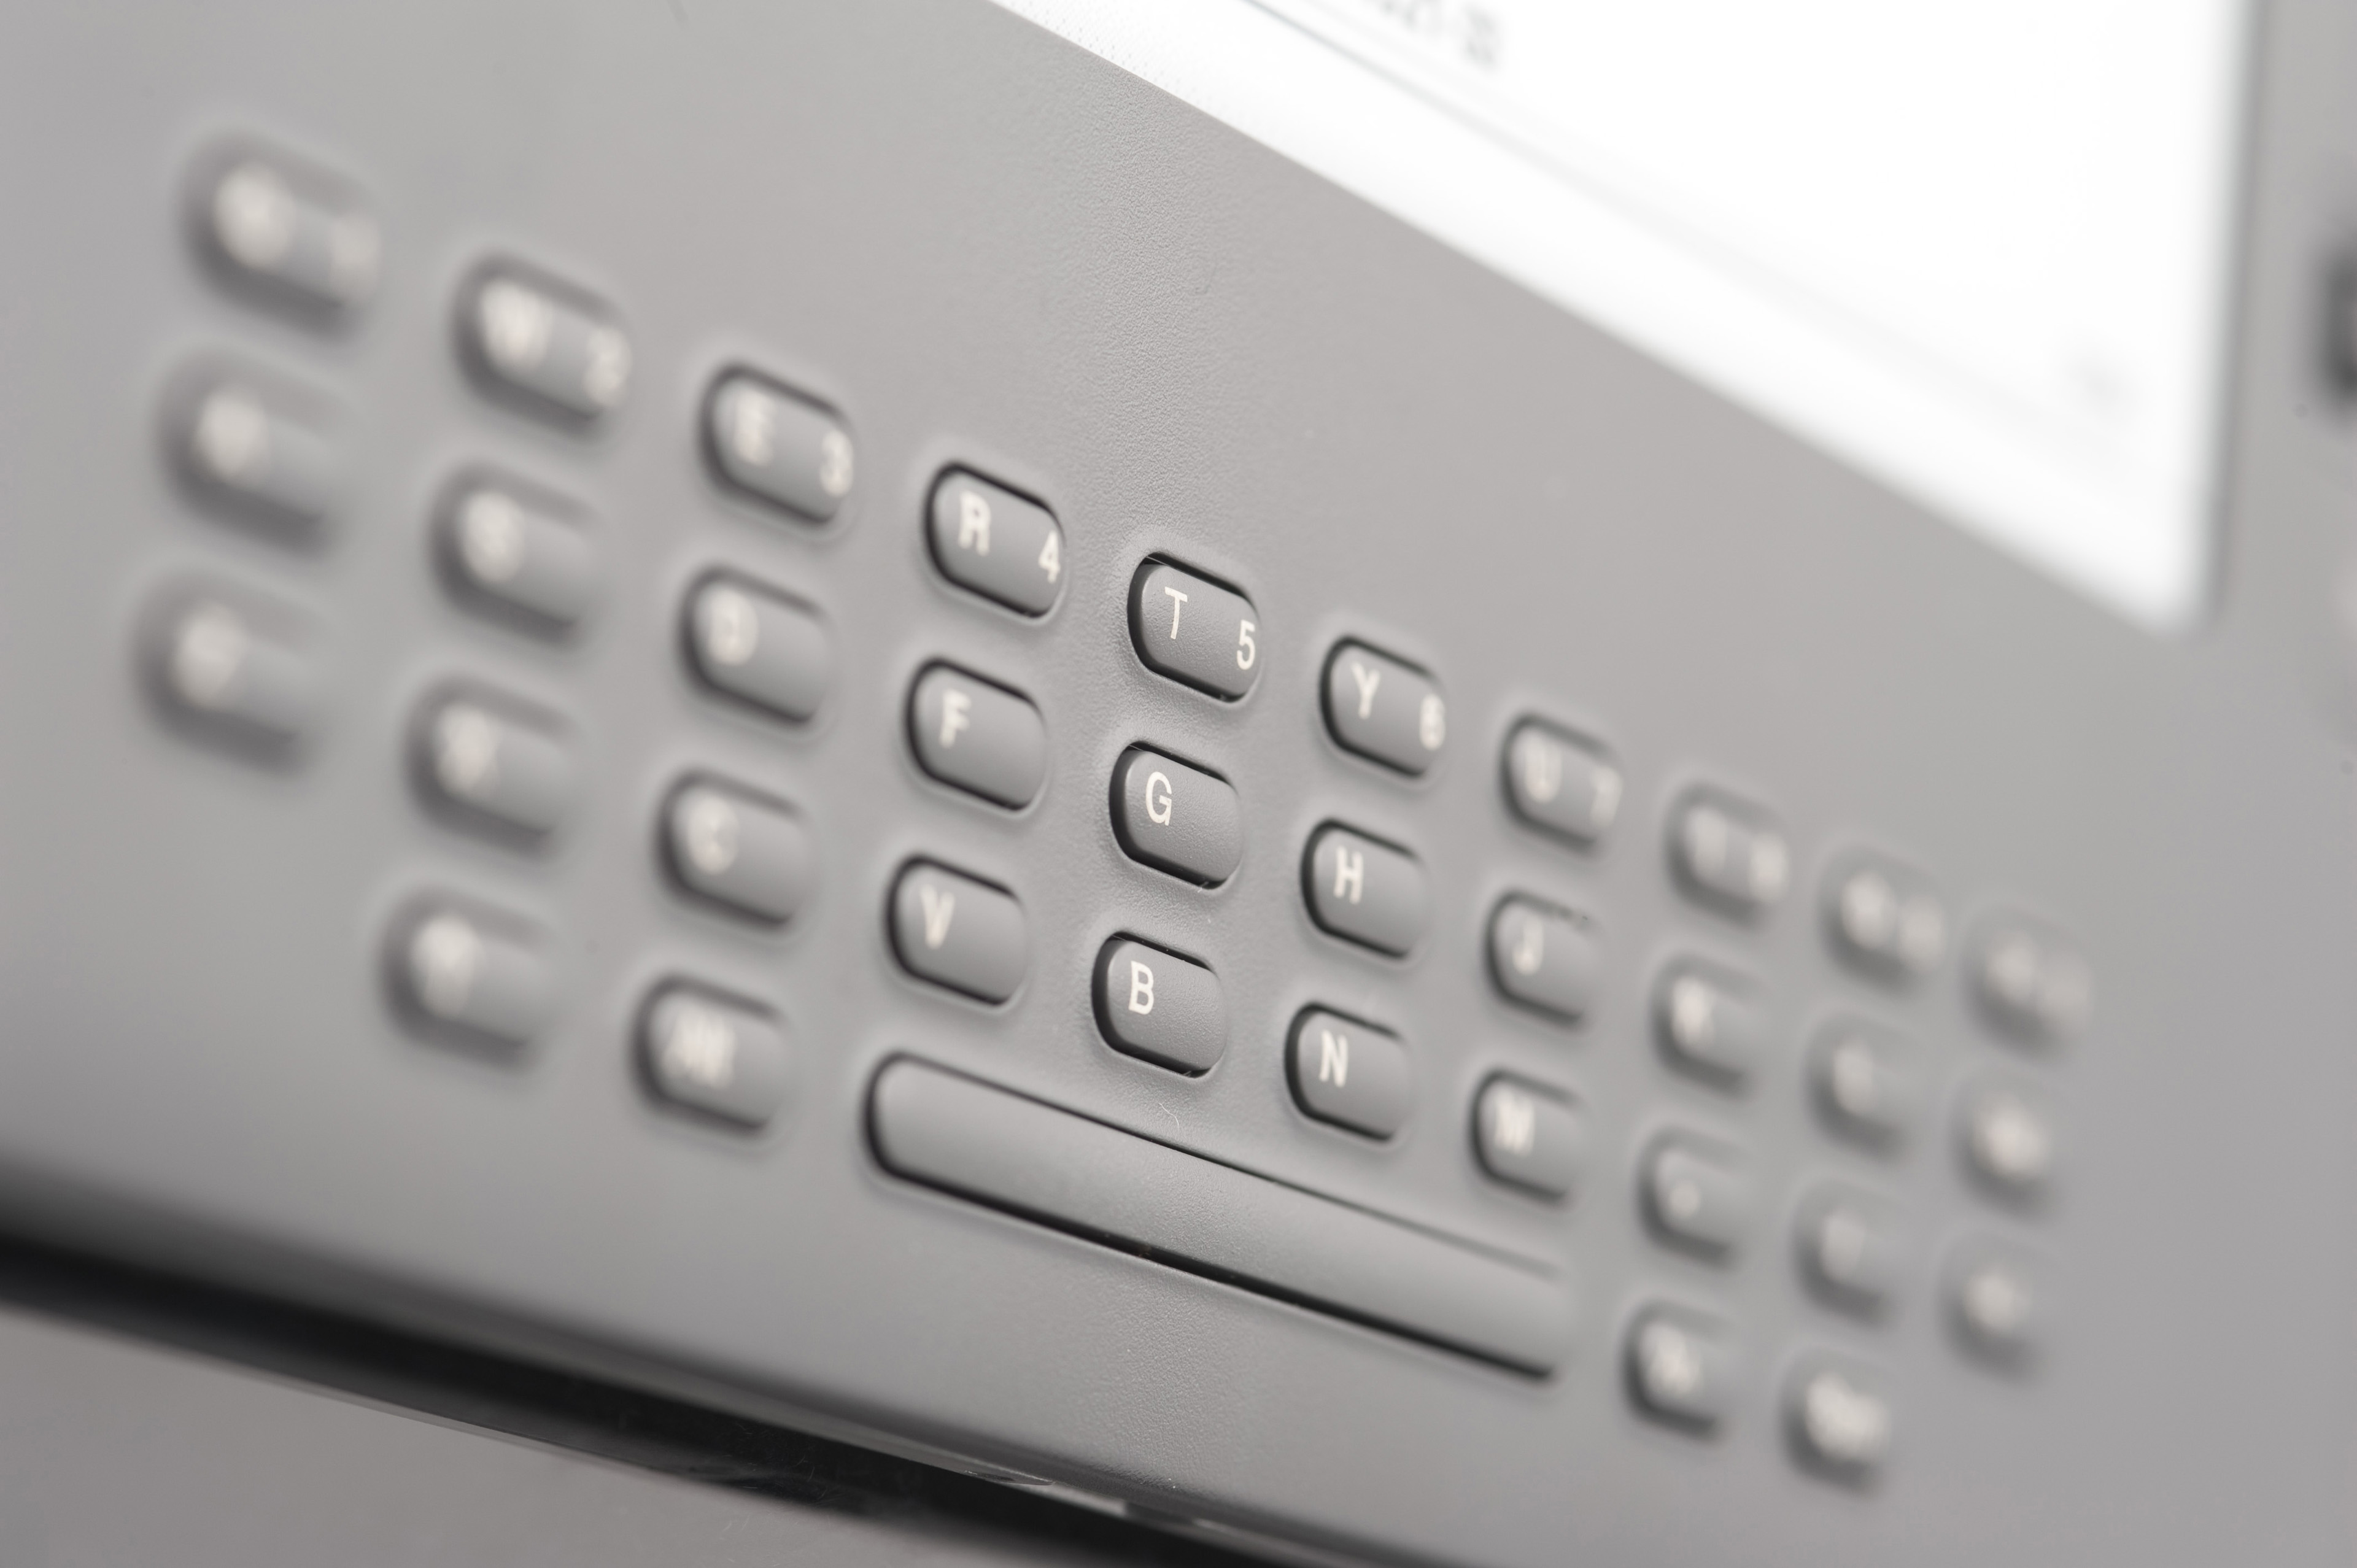 Close Up Detail of Electronic Book Reader Keyboard, Selective Focus on Center Keys